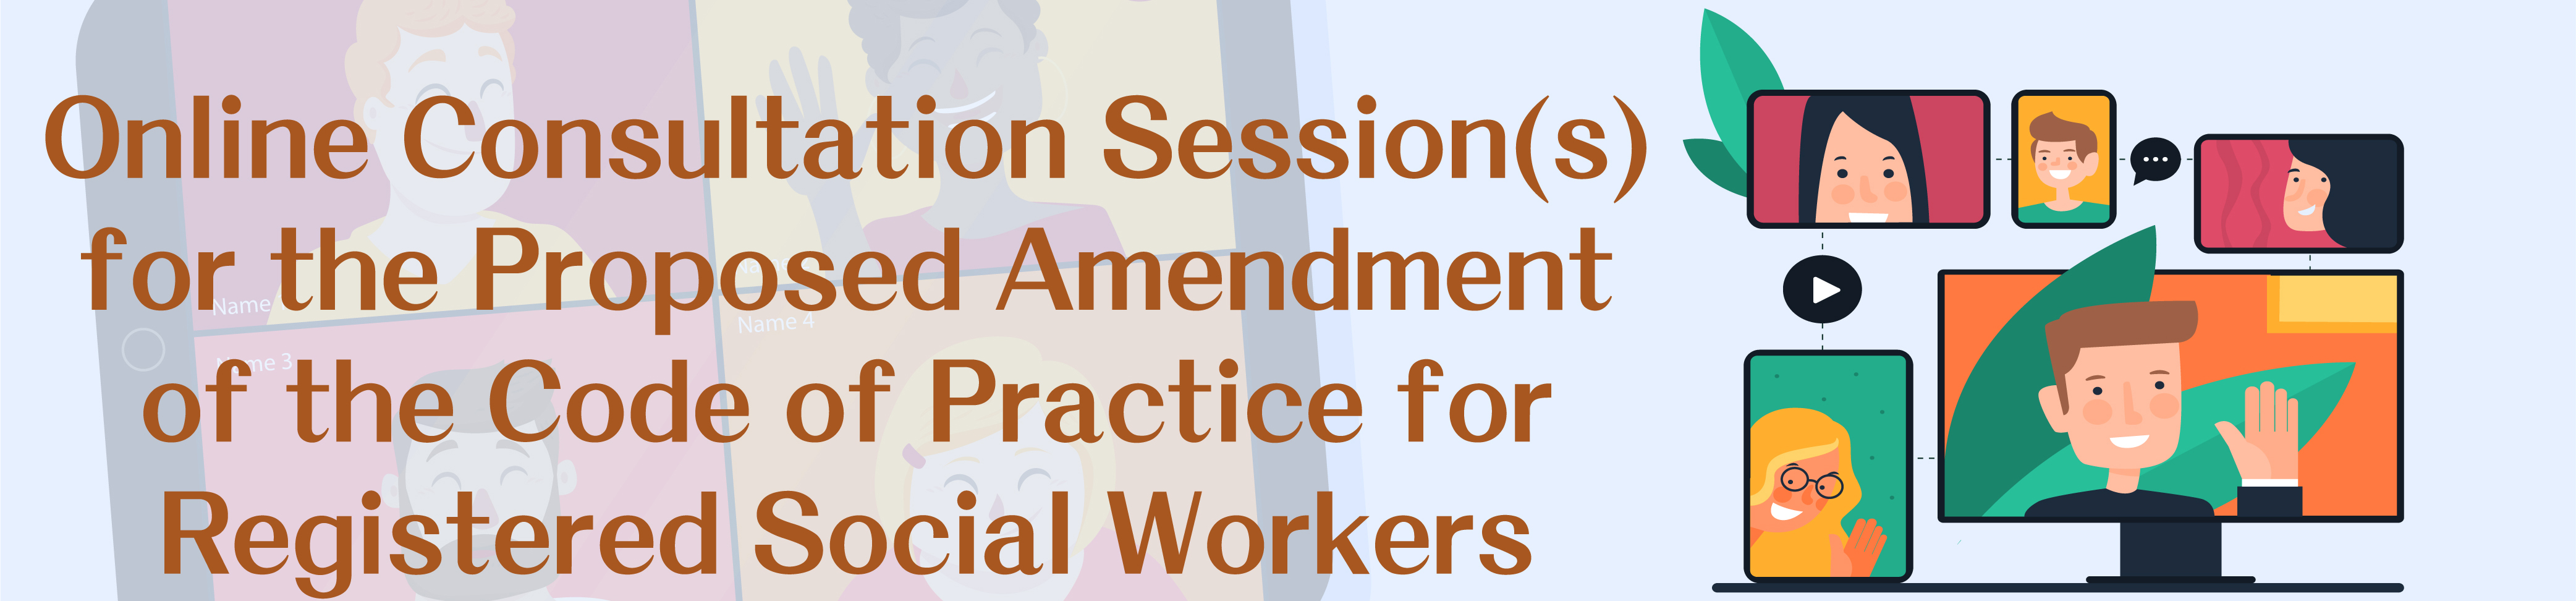 Online Consultation Session(s) for the Proposed Amendment of the Code of Practice for Registered Social Workers